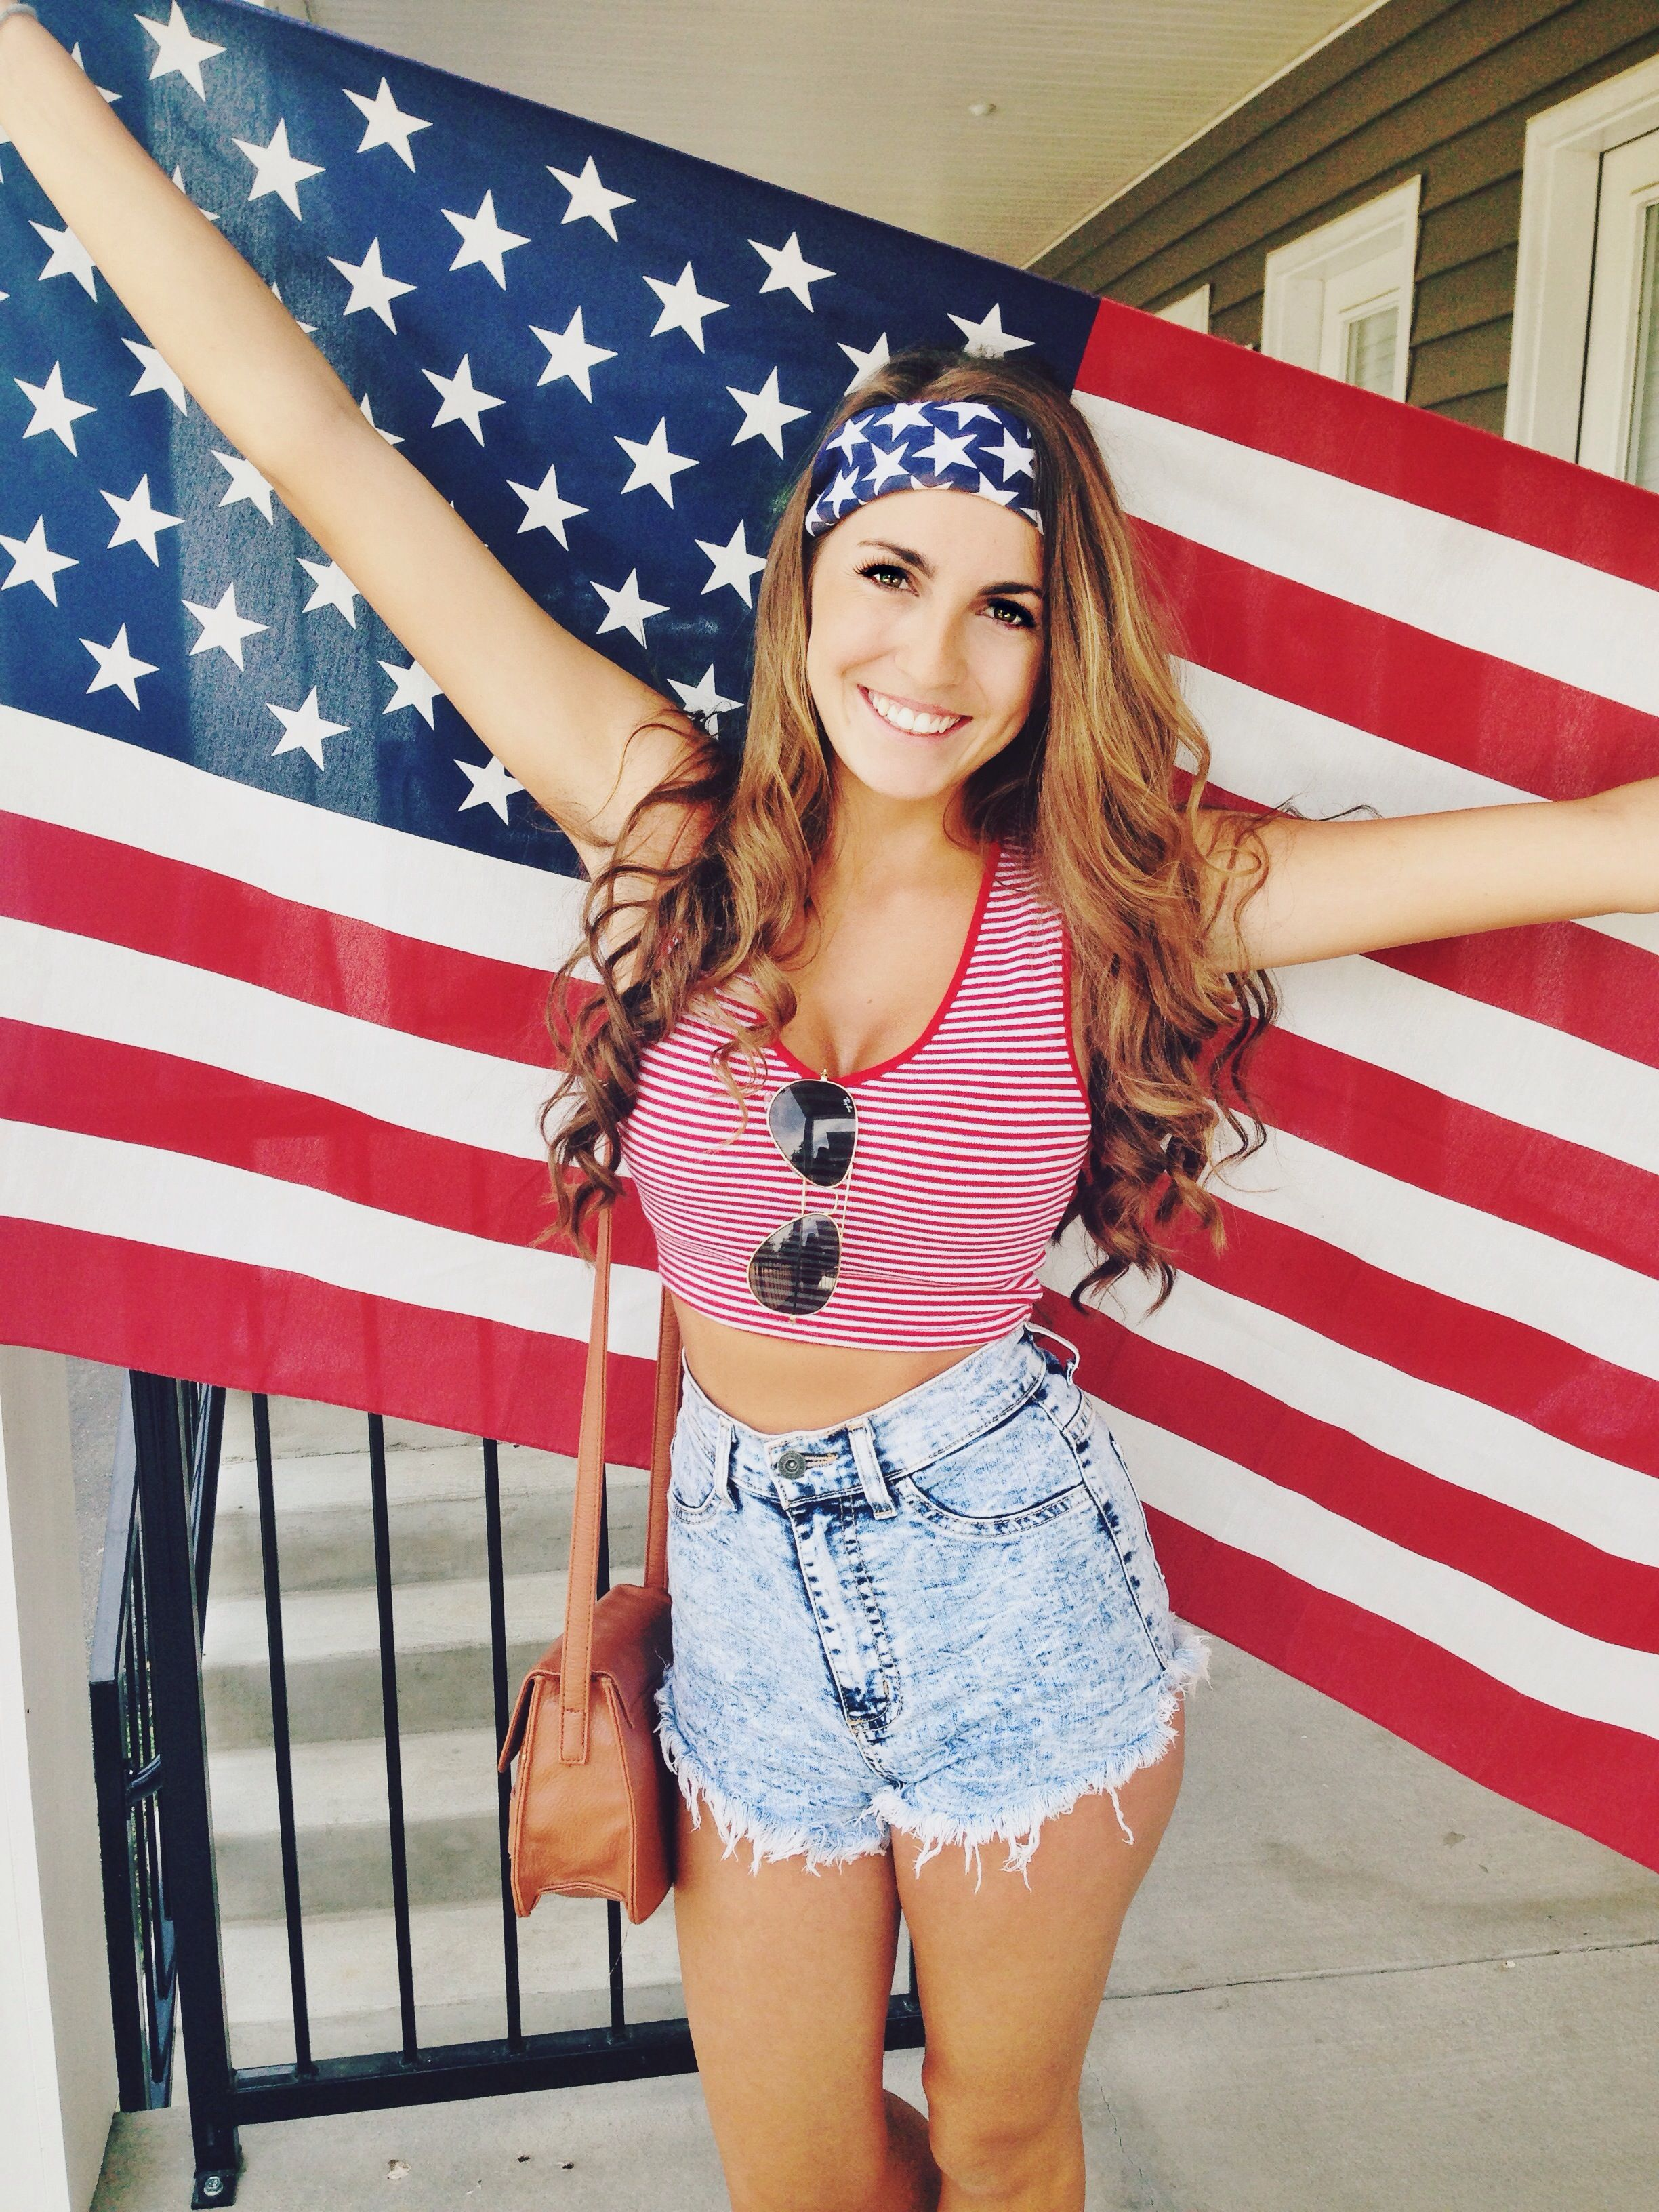 fd4ae342 FSU Fourth of July. #TFM | 'Merica! | 4th of july outfits, Spring ...